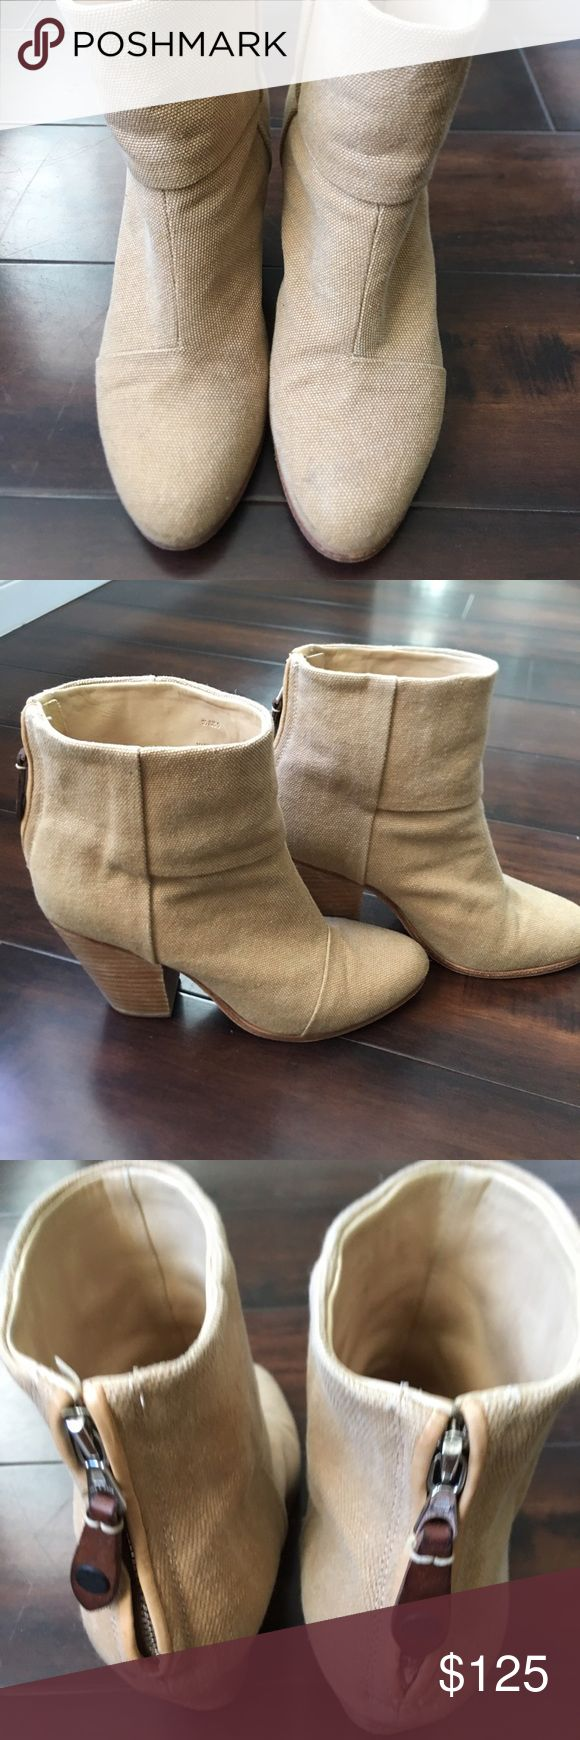 Rag and Bone Booties Great neutral boot. Back zip. Great condition. rag & bone Shoes Ankle Boots & Booties